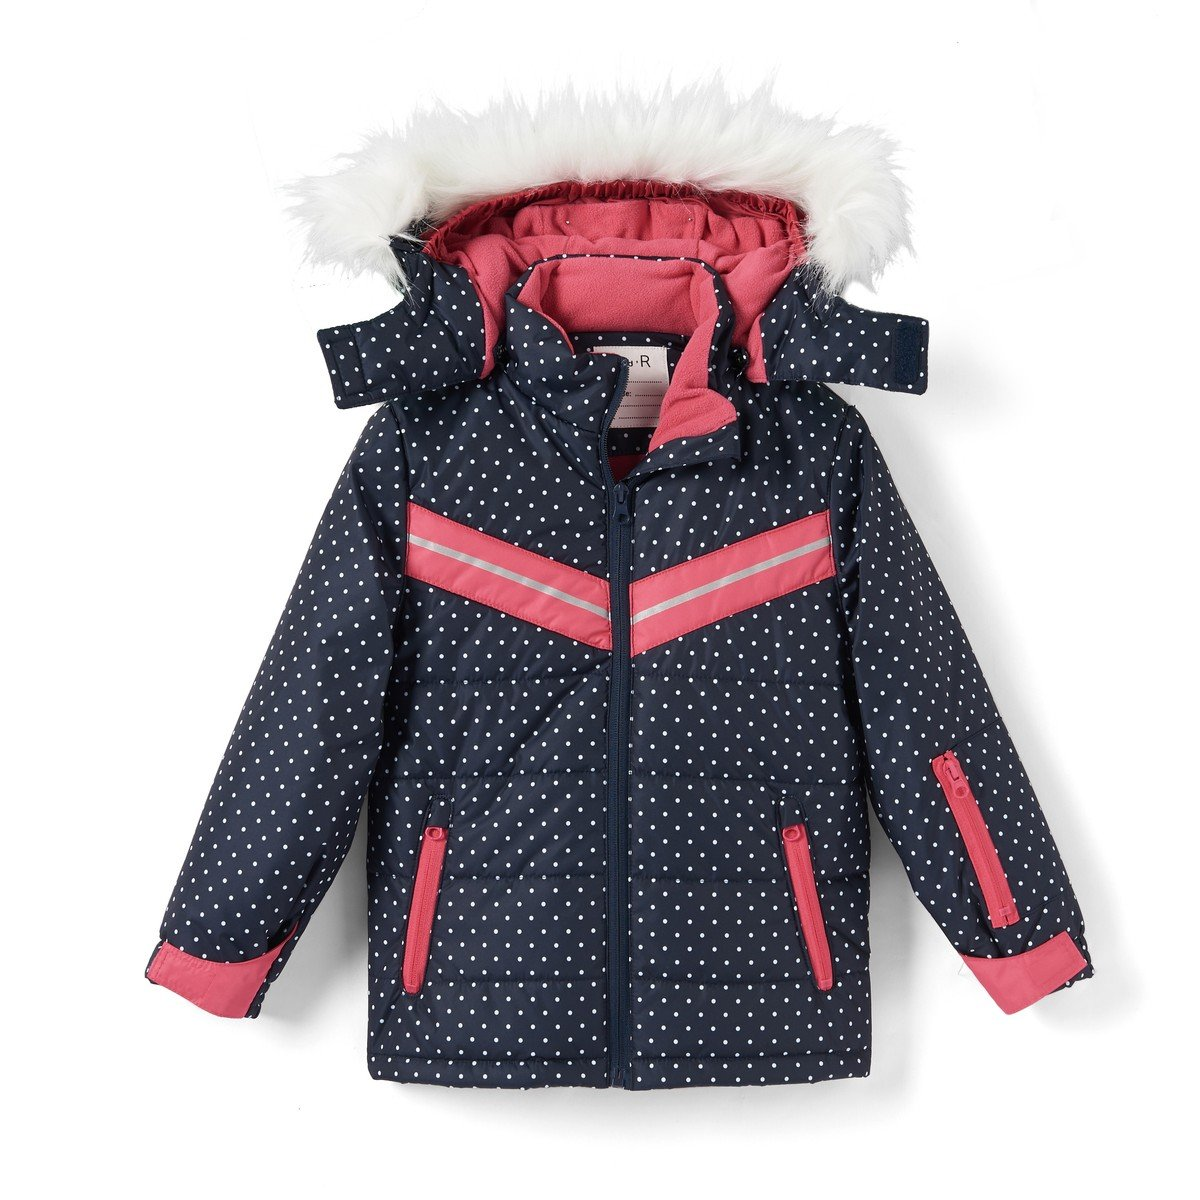 La Redoute Collections Big Girls Polka Dot Padded Parka, 3-16 Years Other Size 8 Years - 49 In.